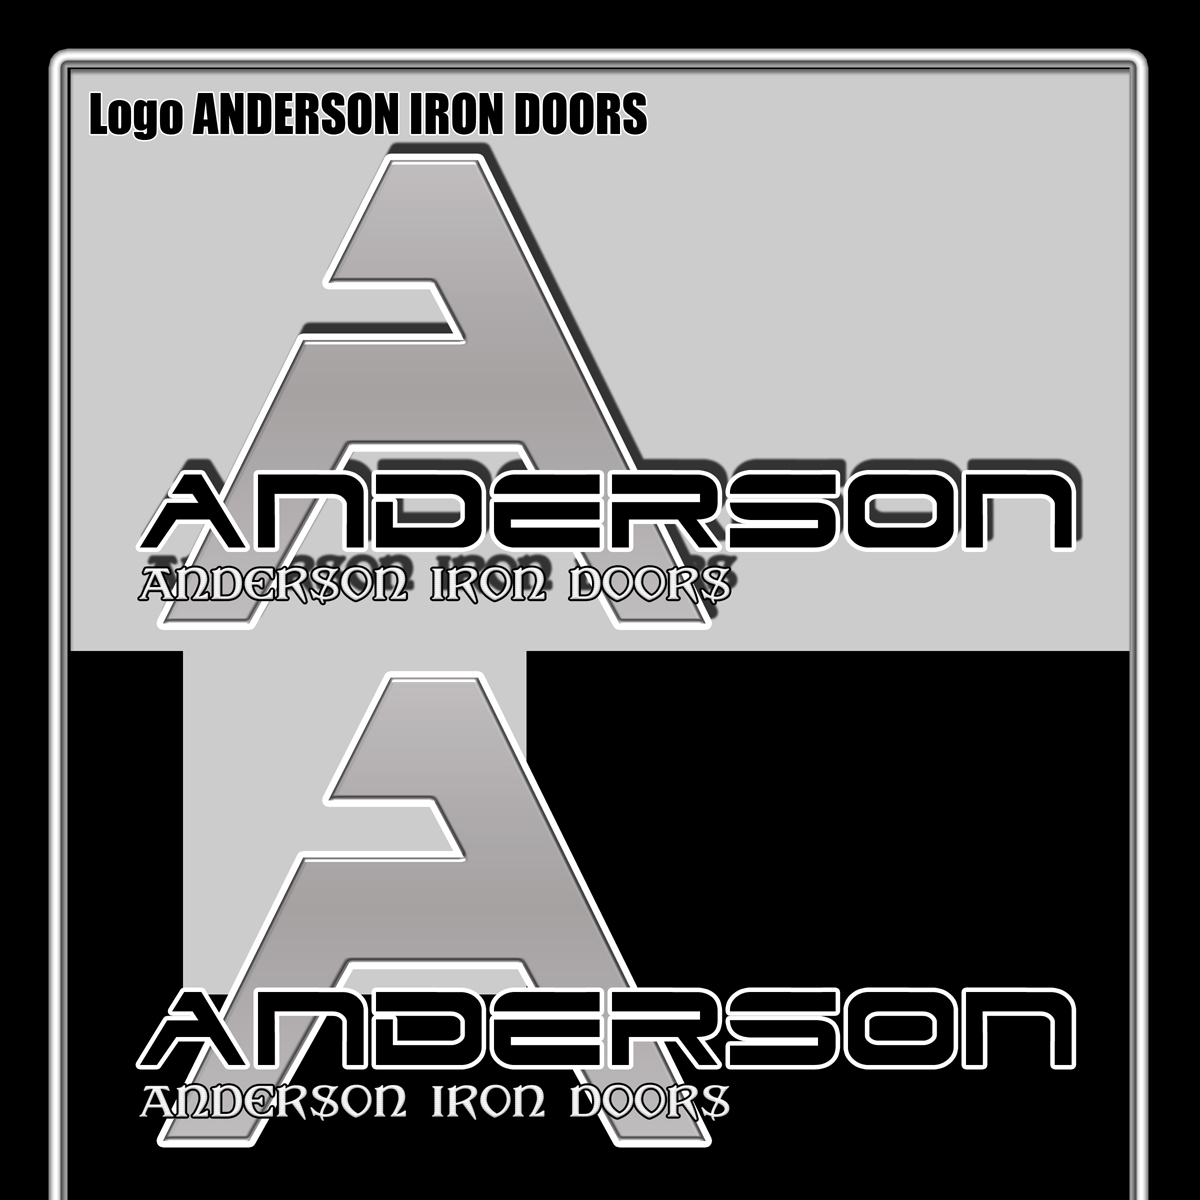 Logo Design by MITUCA ANDREI - Entry No. 4 in the Logo Design Contest Artistic Logo Design for Anderson Iron Doors.